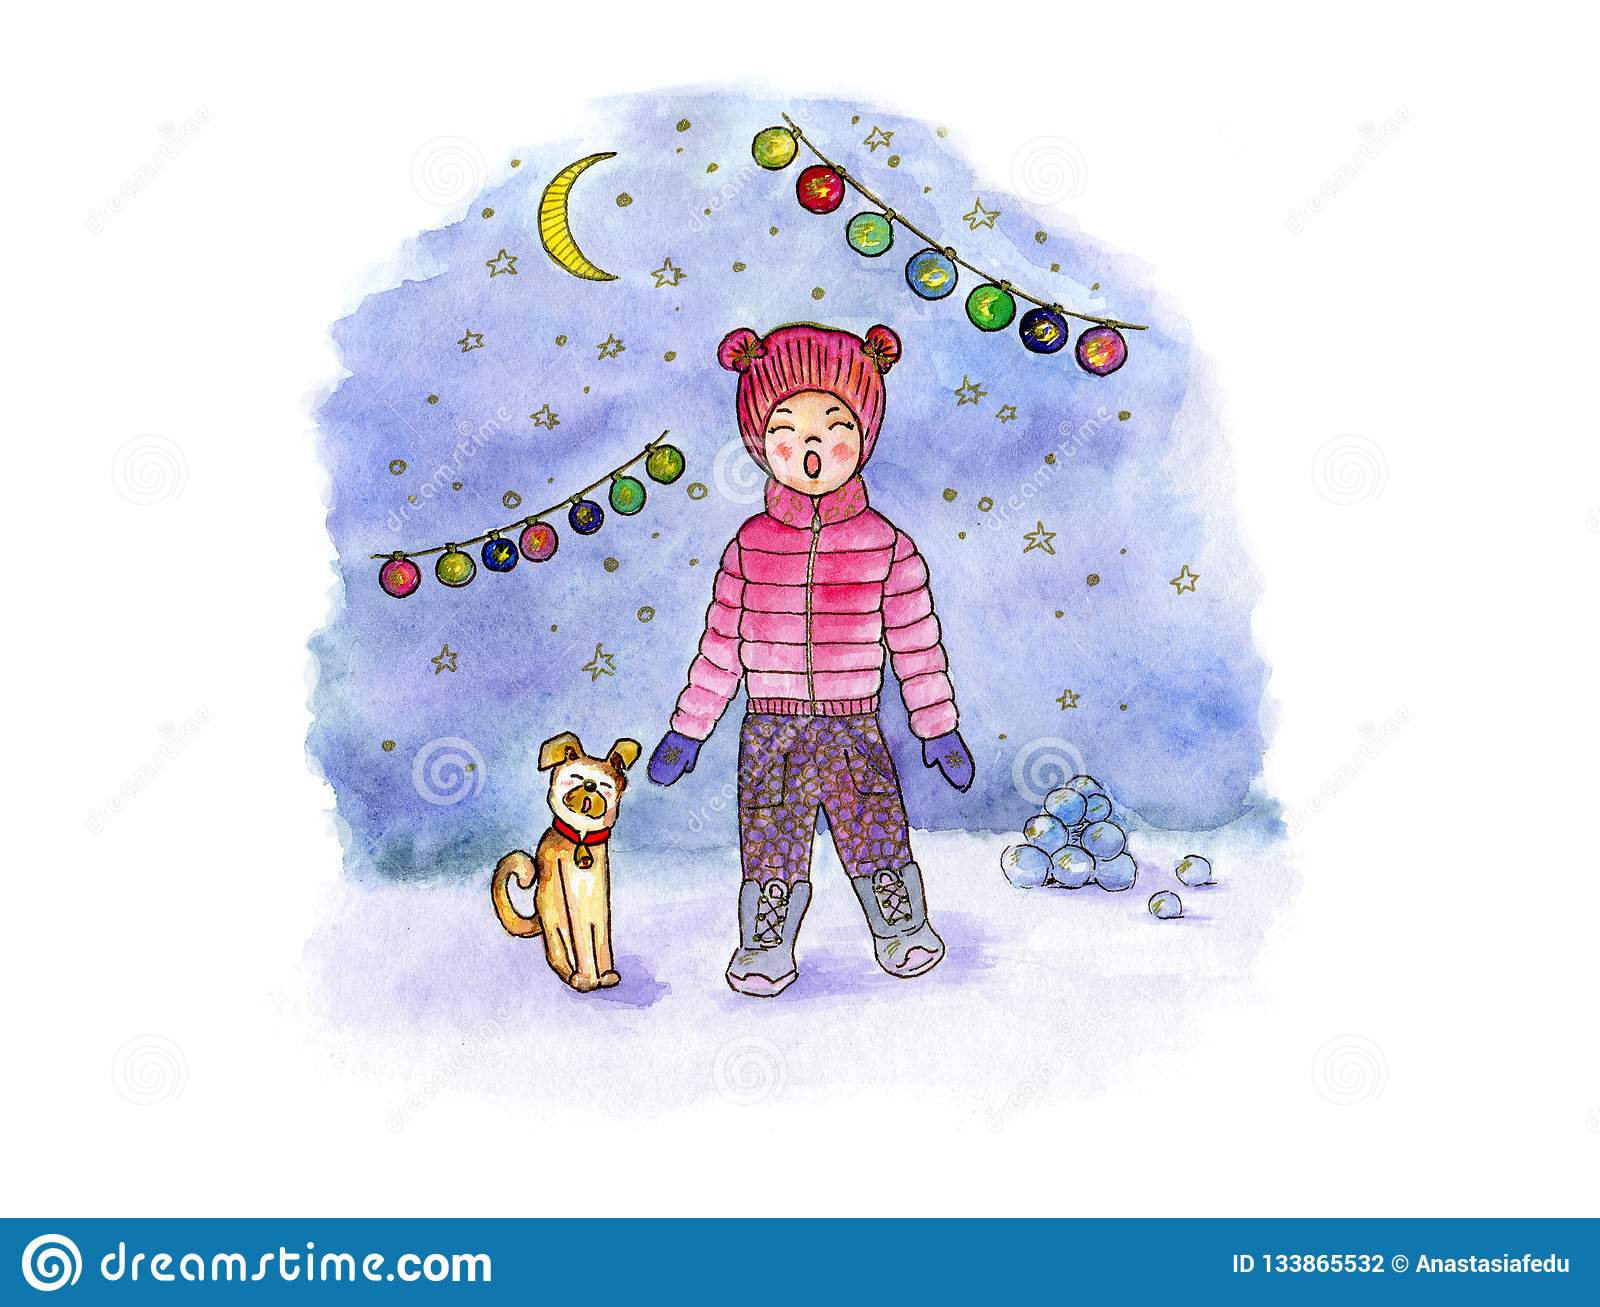 Hand drawing watercolor art with singing girl, dog, moon and garland against the background of a snowy evening.